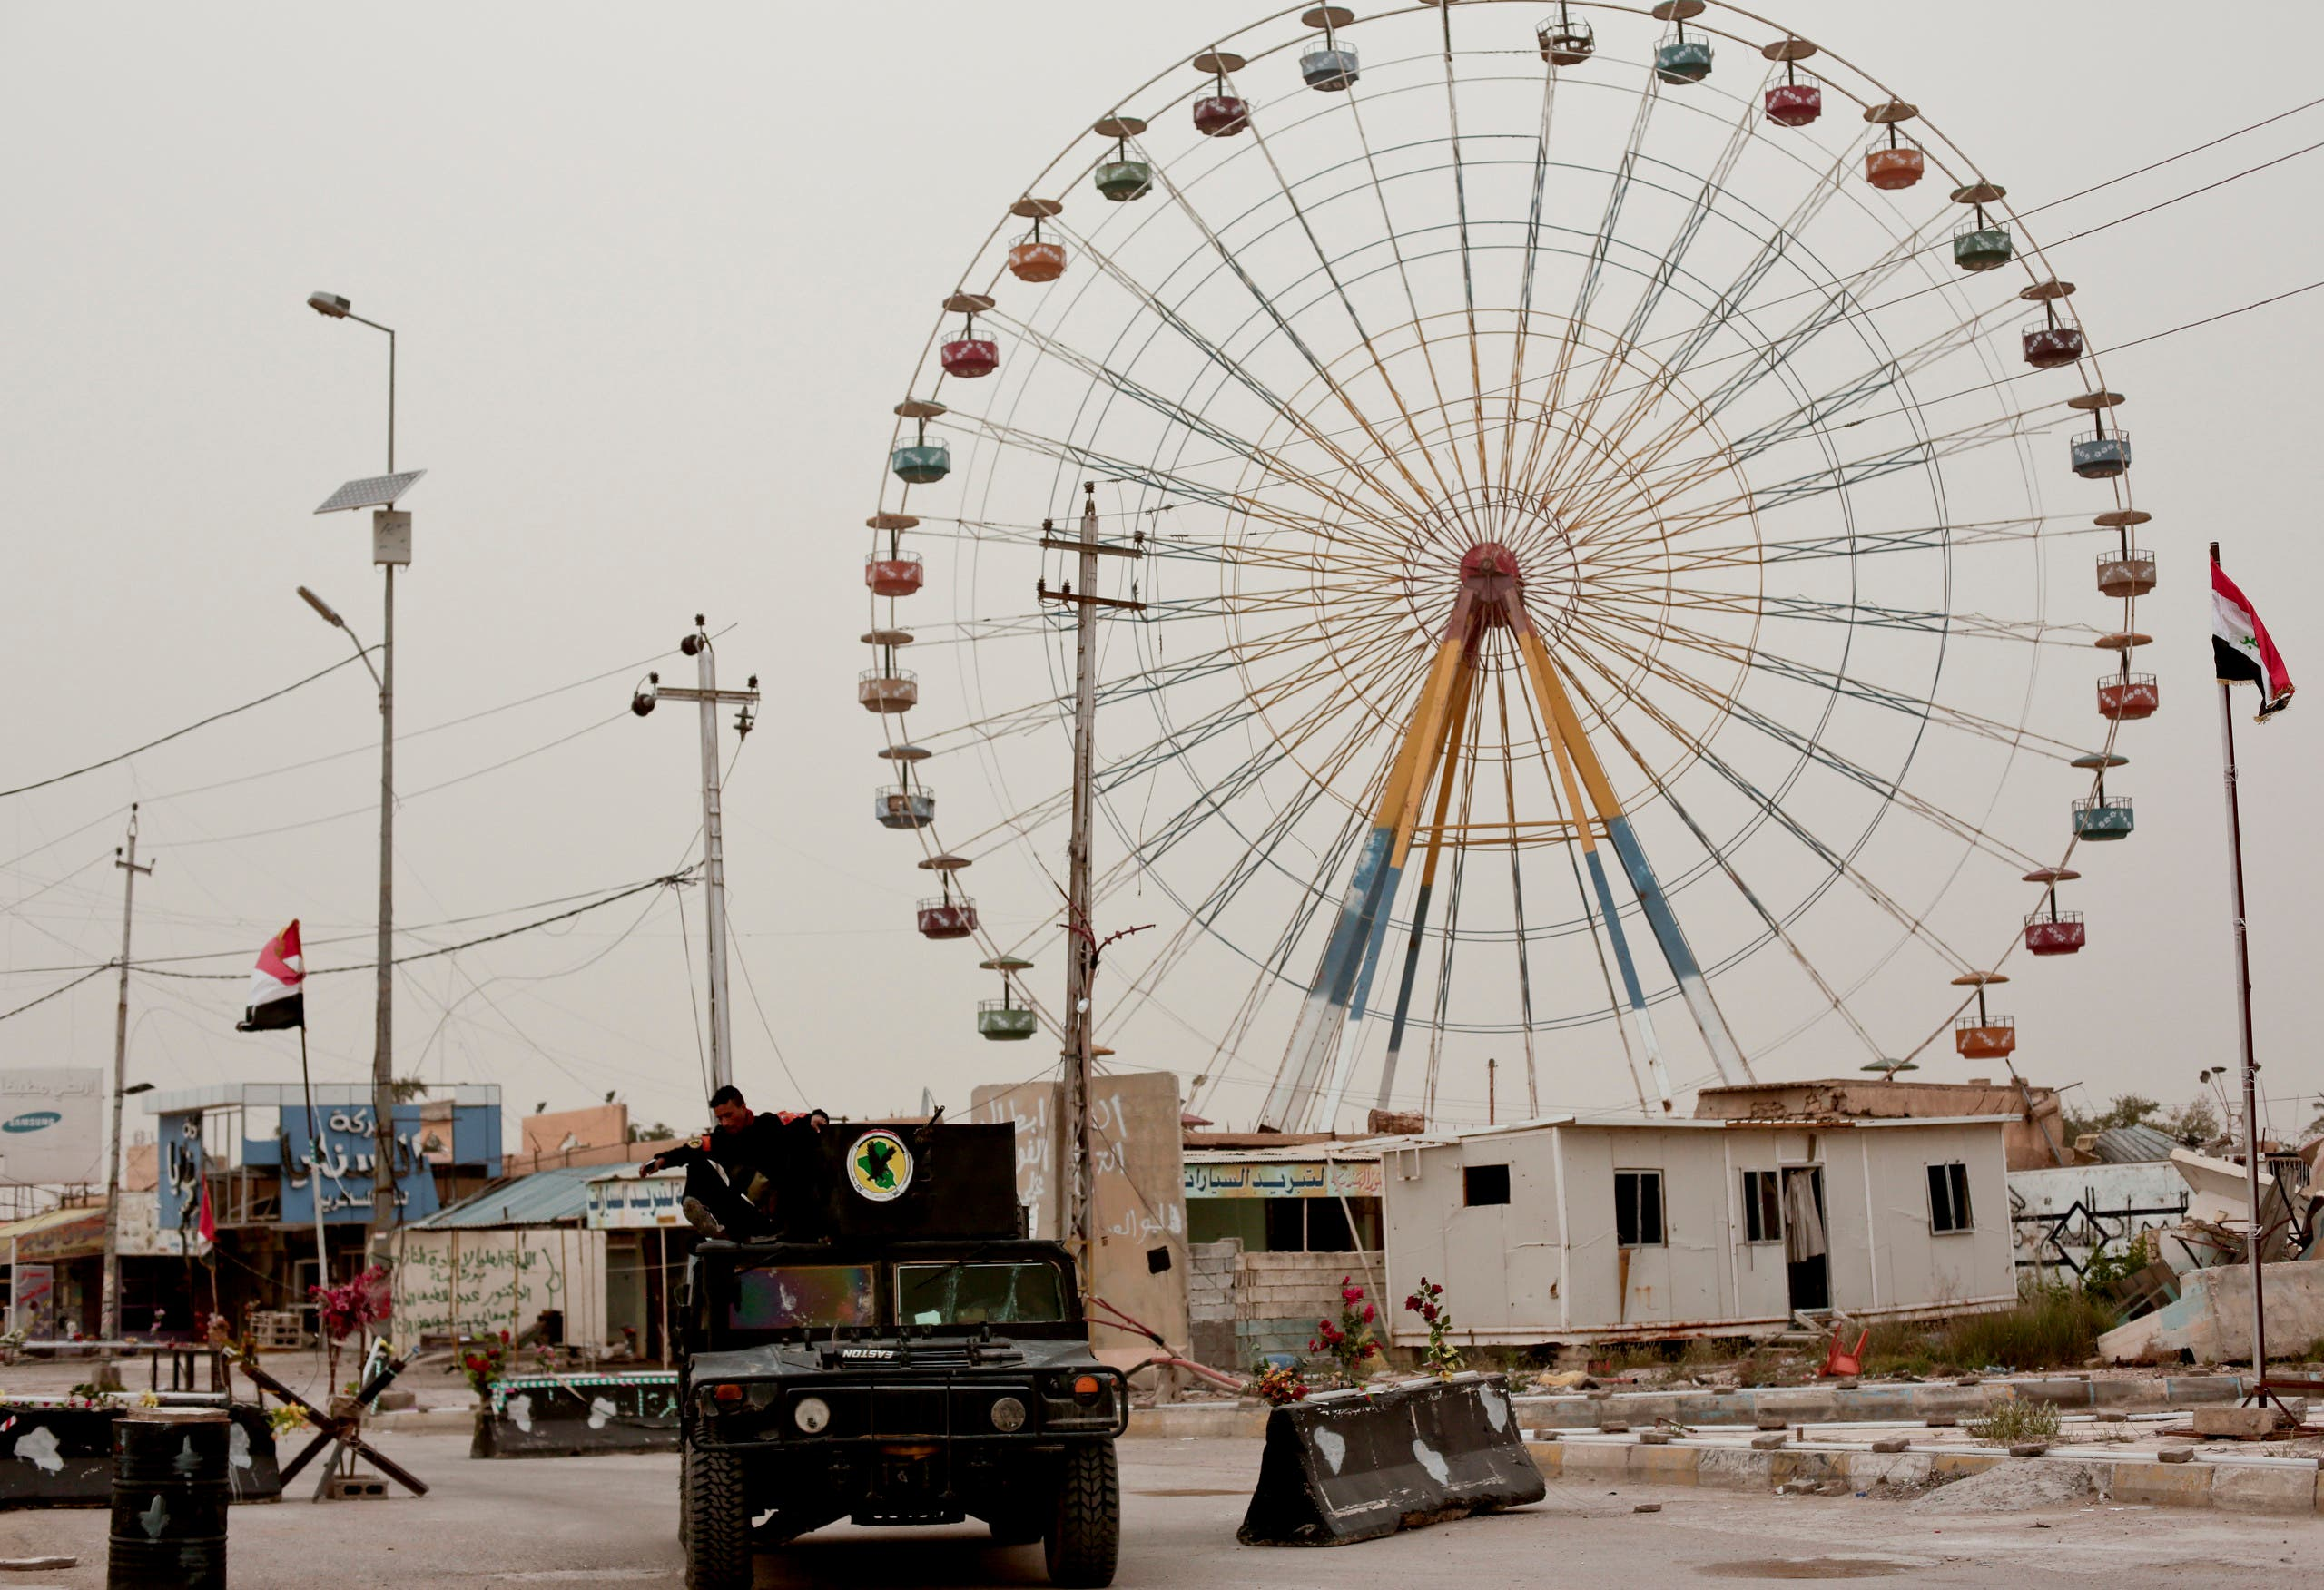 Iraqi counterterrorism forces drive past a ferris wheel in a central district of Ramadi on March 20, 2016. AP